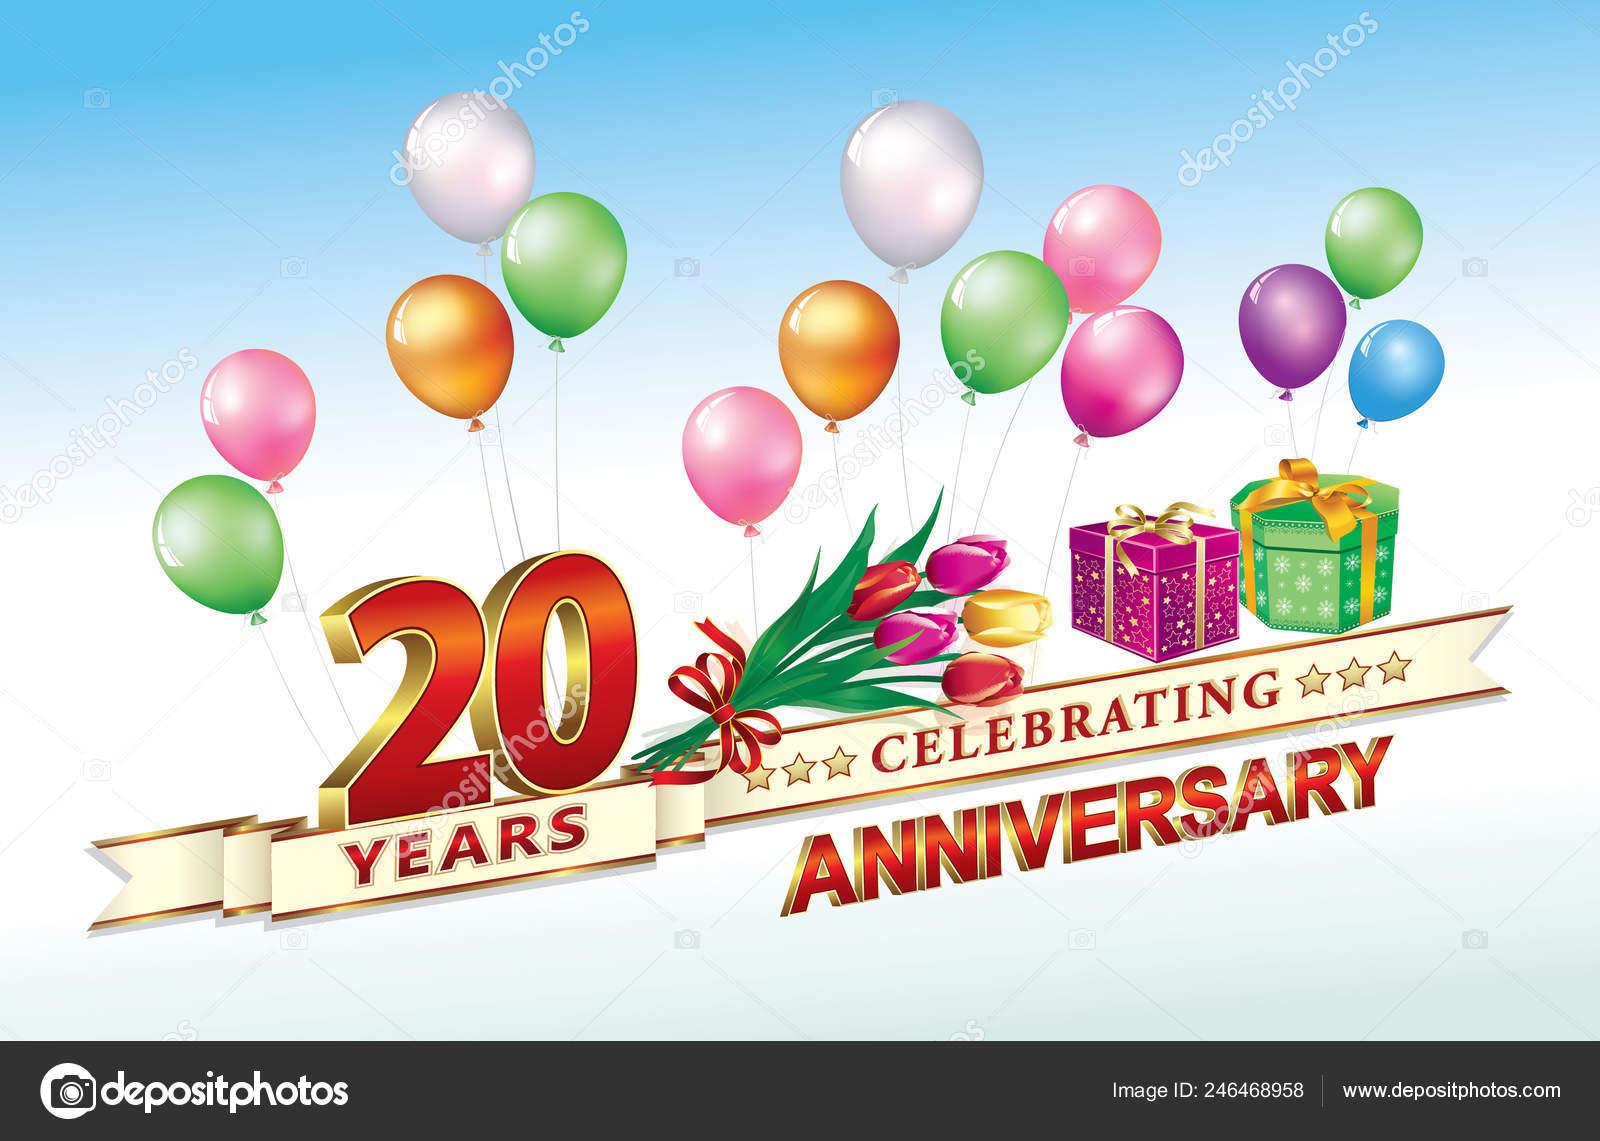 20th Anniversary Birthday 20 Years Celebrations Birthday Card With Gift Boxes Flowers Balloons Festive Poster Vector Illustration Vector Image By C Seriga Vector Stock 246468958